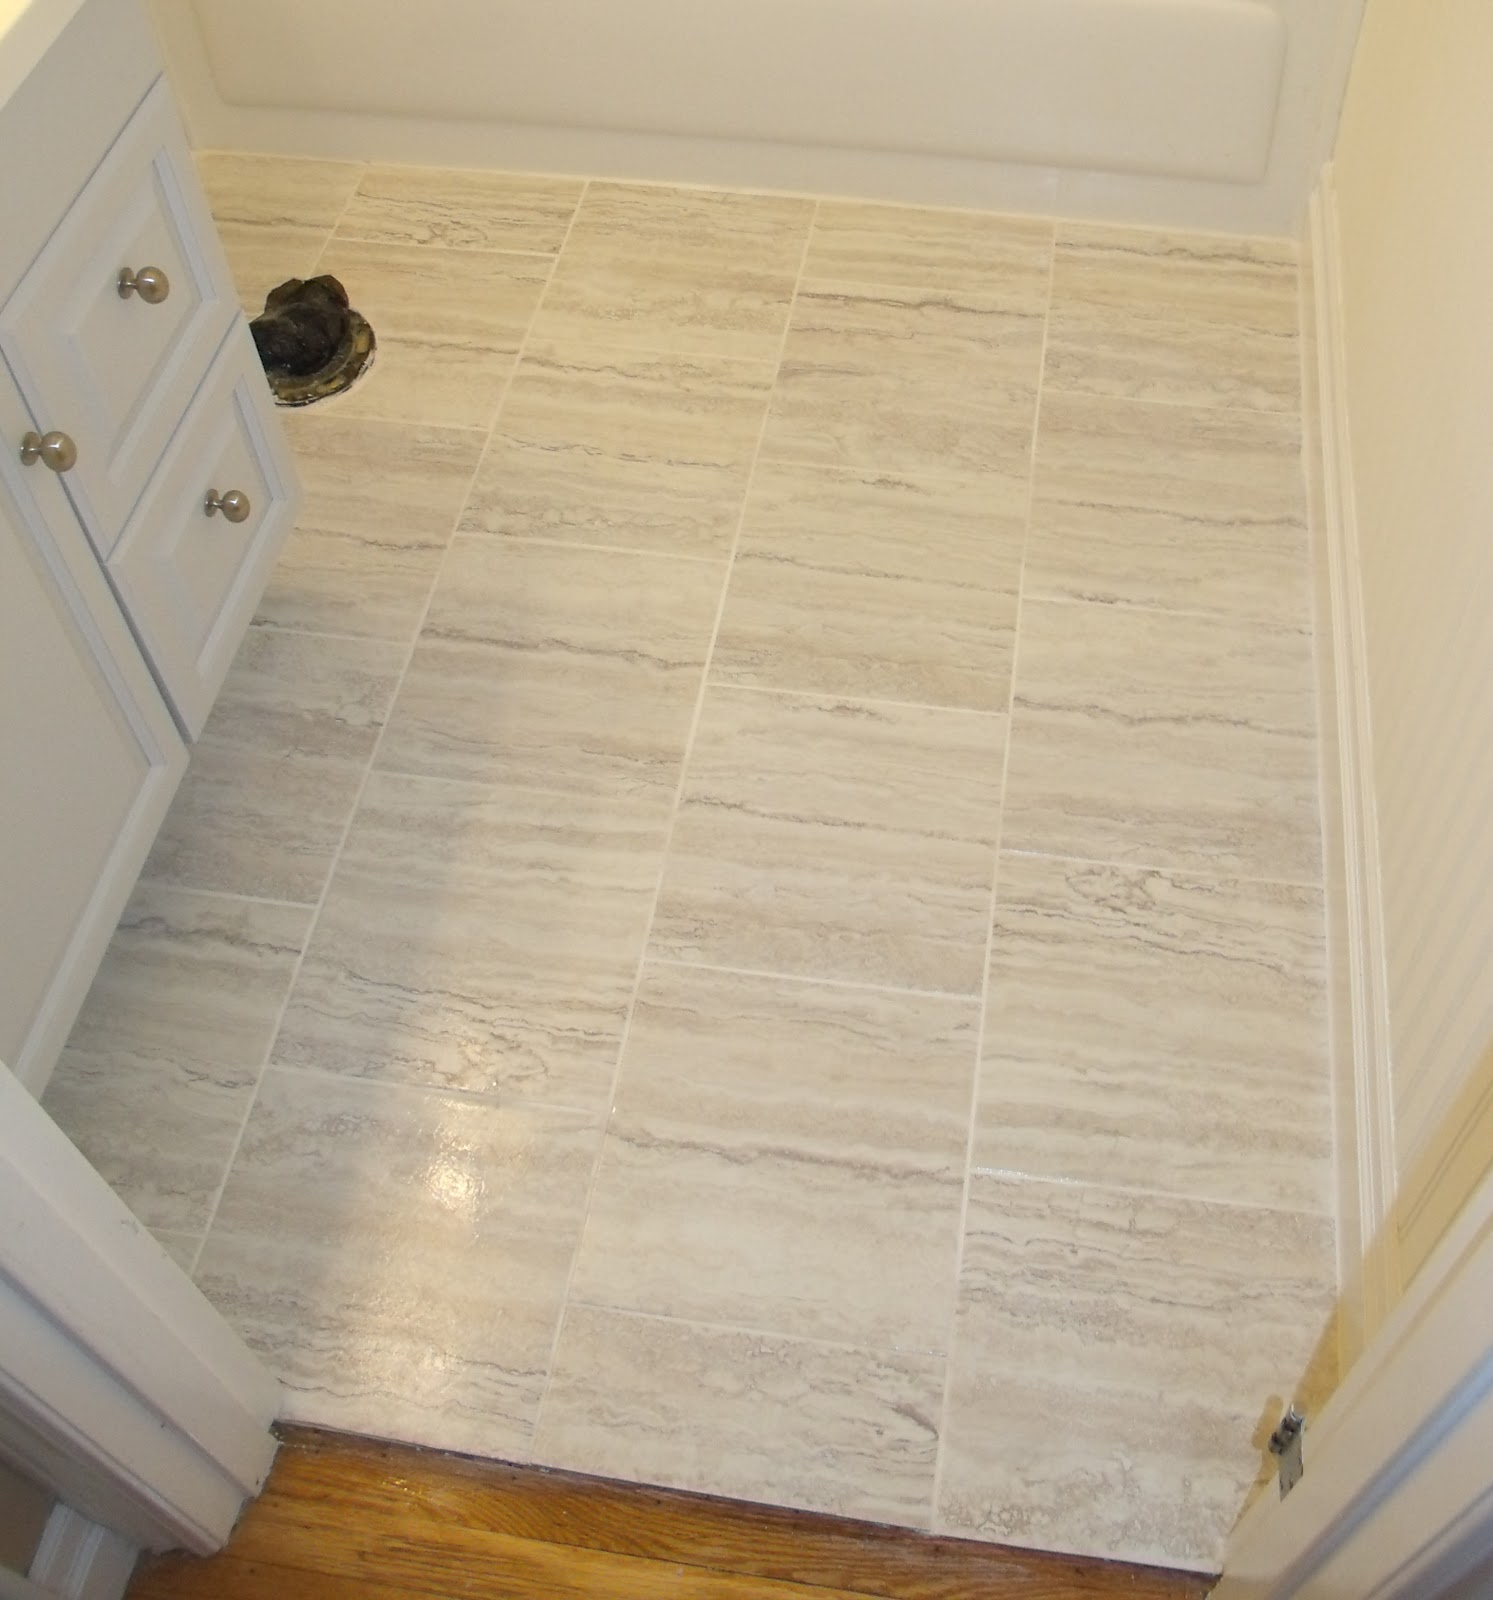 Bathroom Floor Tile Grout